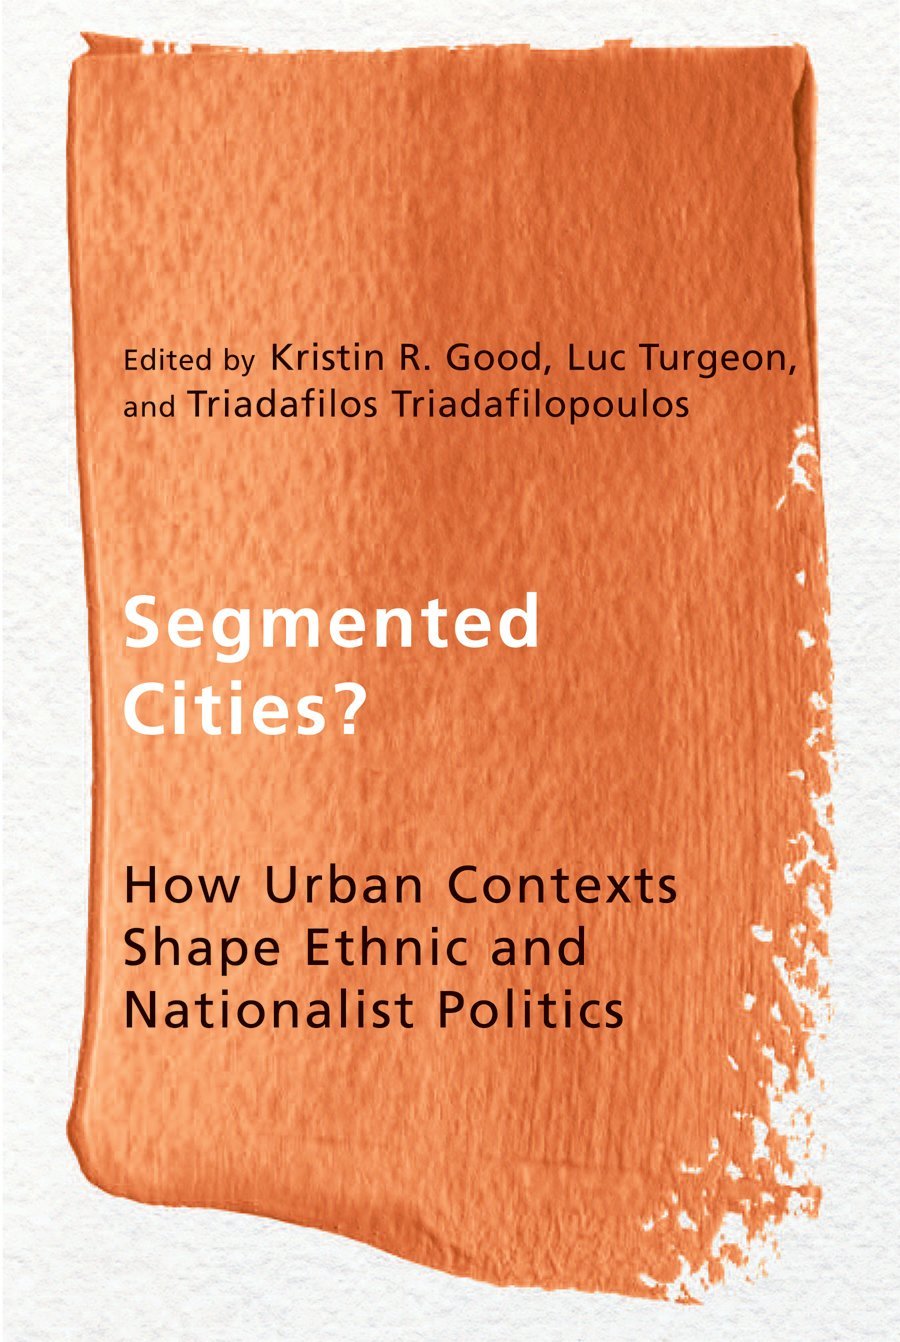 Download Segmented Cities?: How Urban Contexts Shape Ethnic and Nationalist Politics (Ethnicity and Democratic Governance Series) ebook